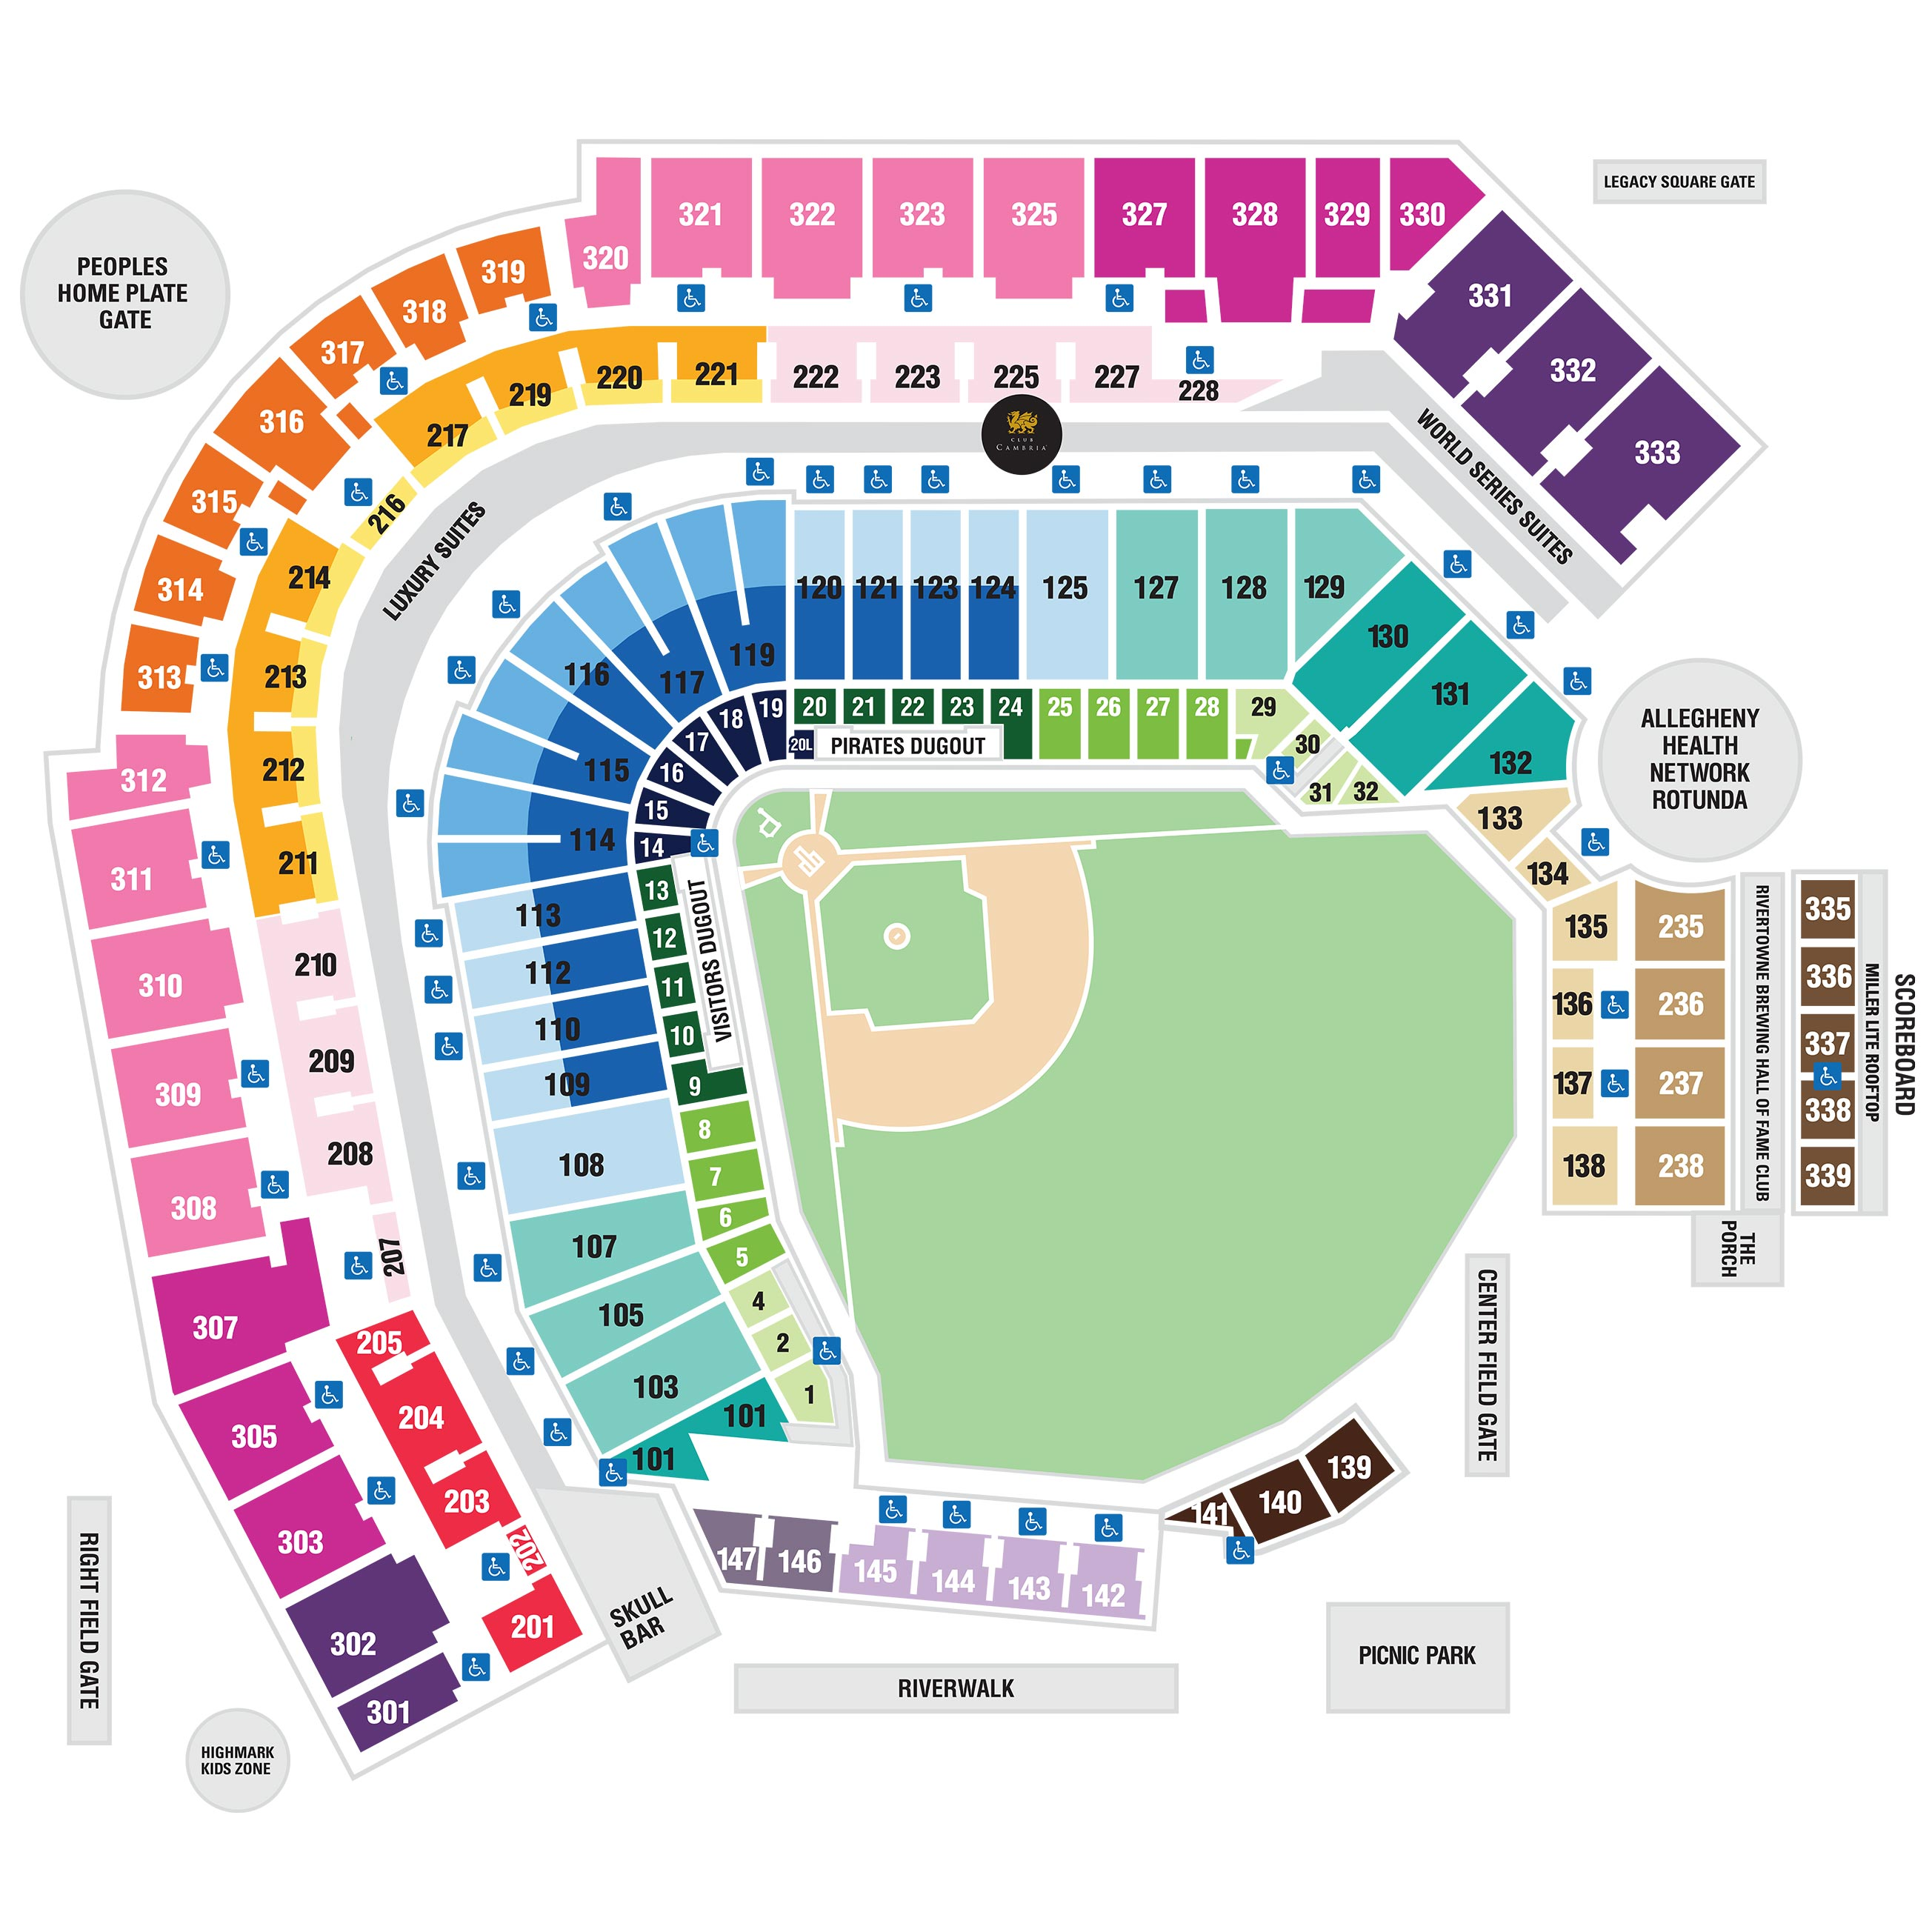 Pnc Park Seating Map Access Guide for Guests with Disabilities | Pittsburgh Pirates